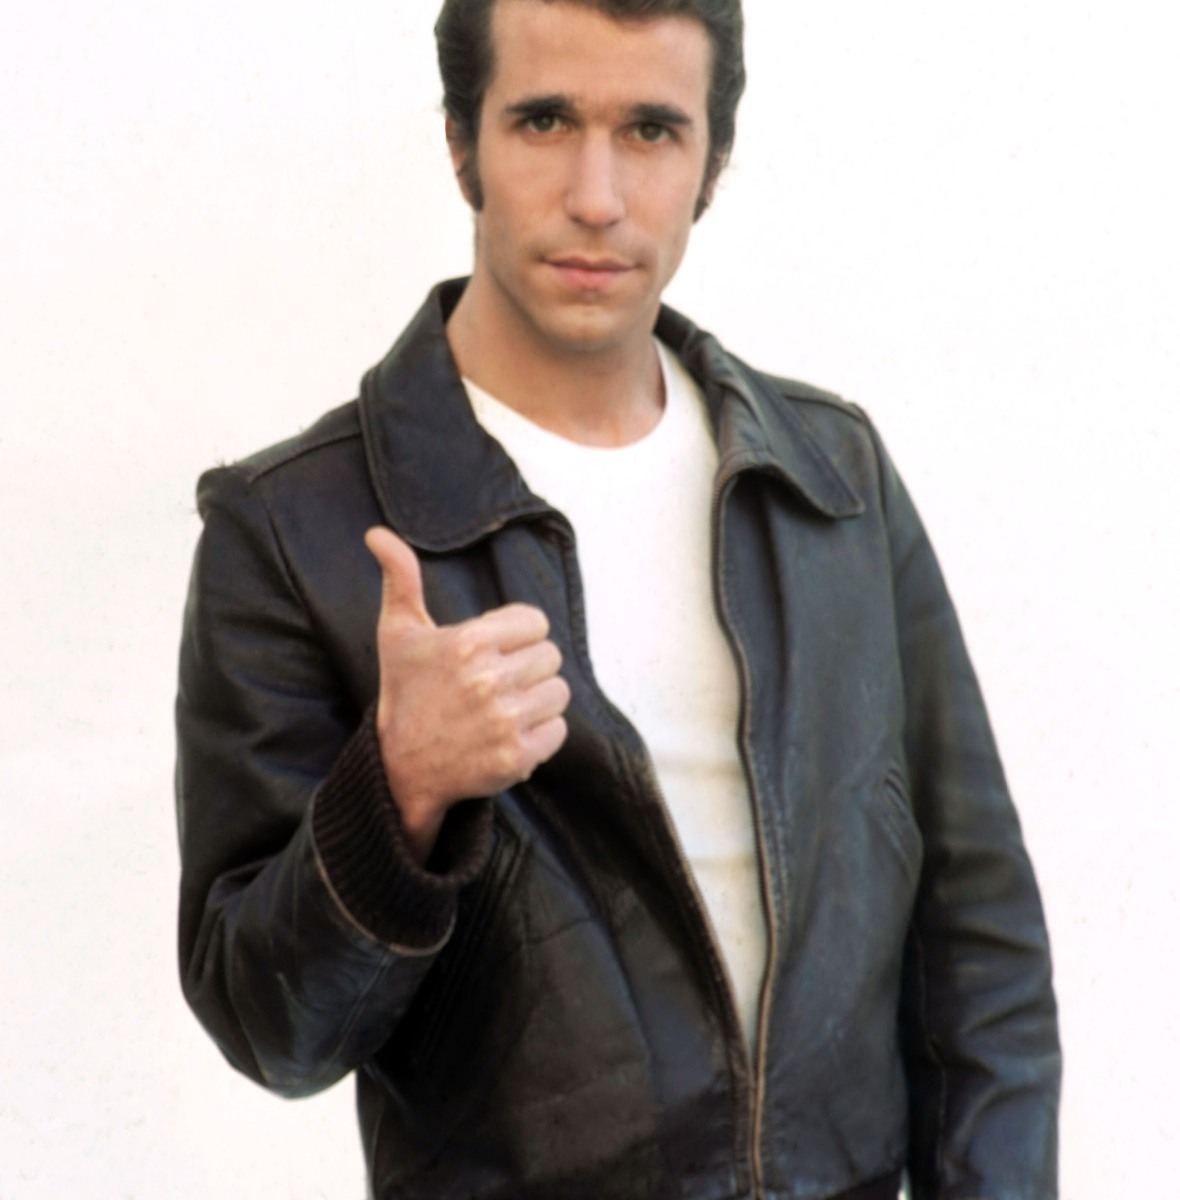 henry winkler 'happy days' getty images